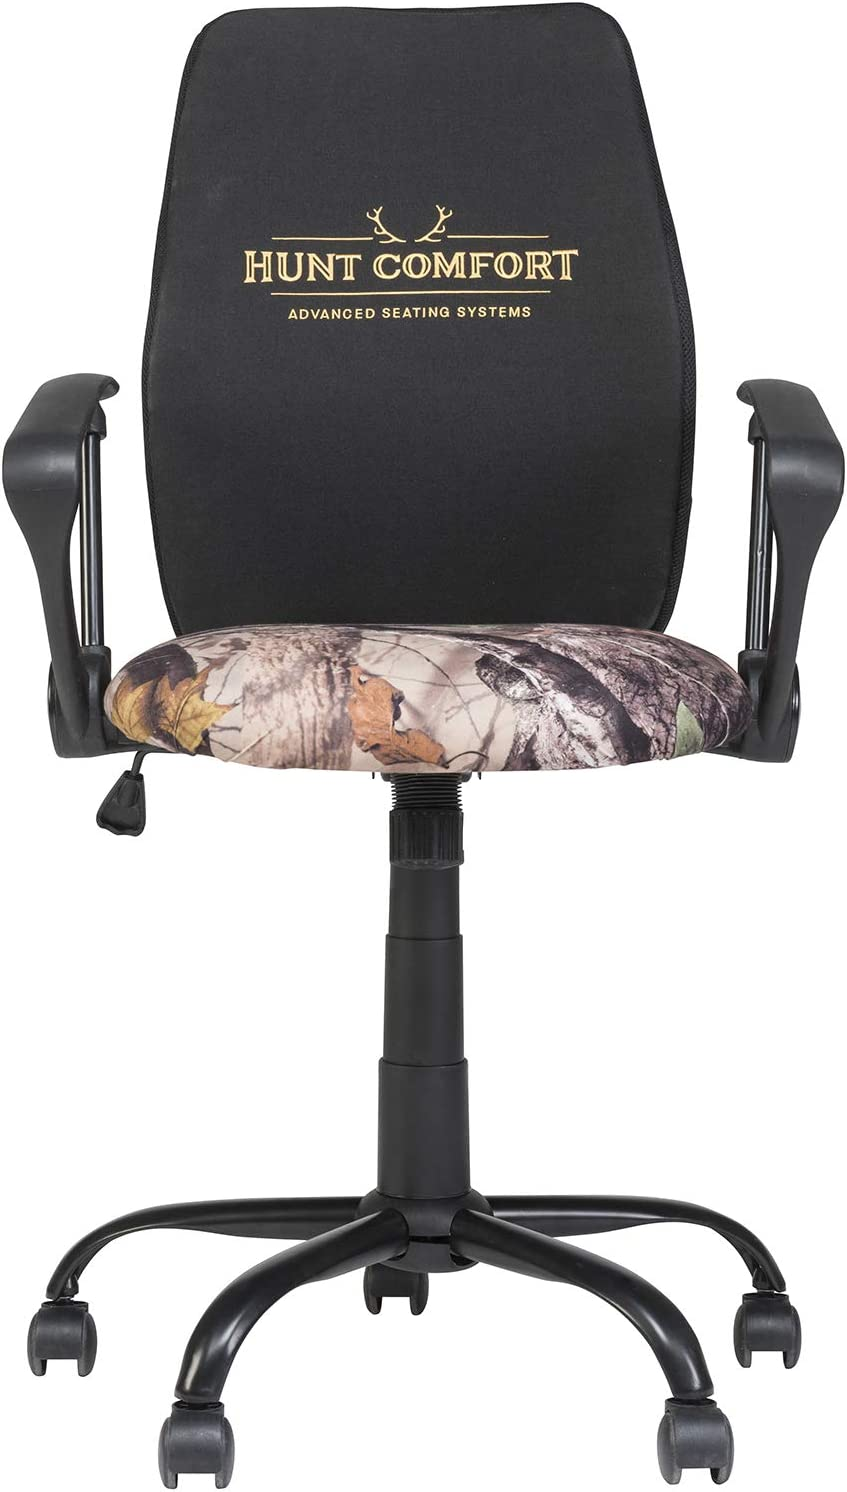 Top 10 Best Hunting chair that swivels 10